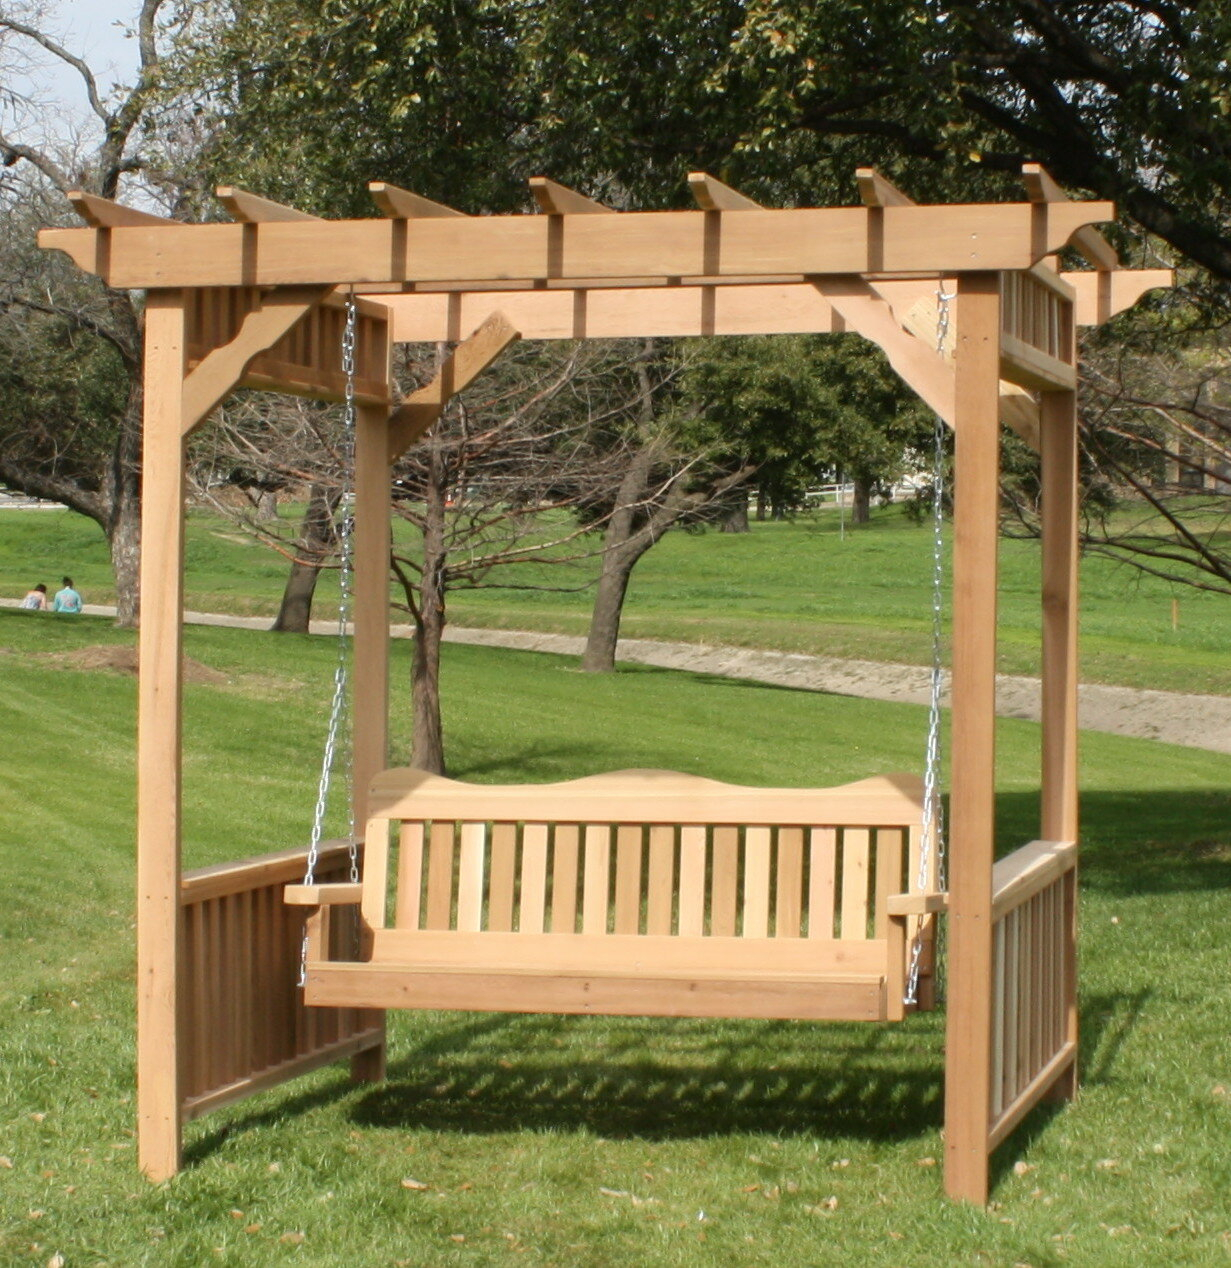 Thayer Cedar Arbor Porch Swing With Stand Intended For Pergola Porch Swings With Stand (View 22 of 26)